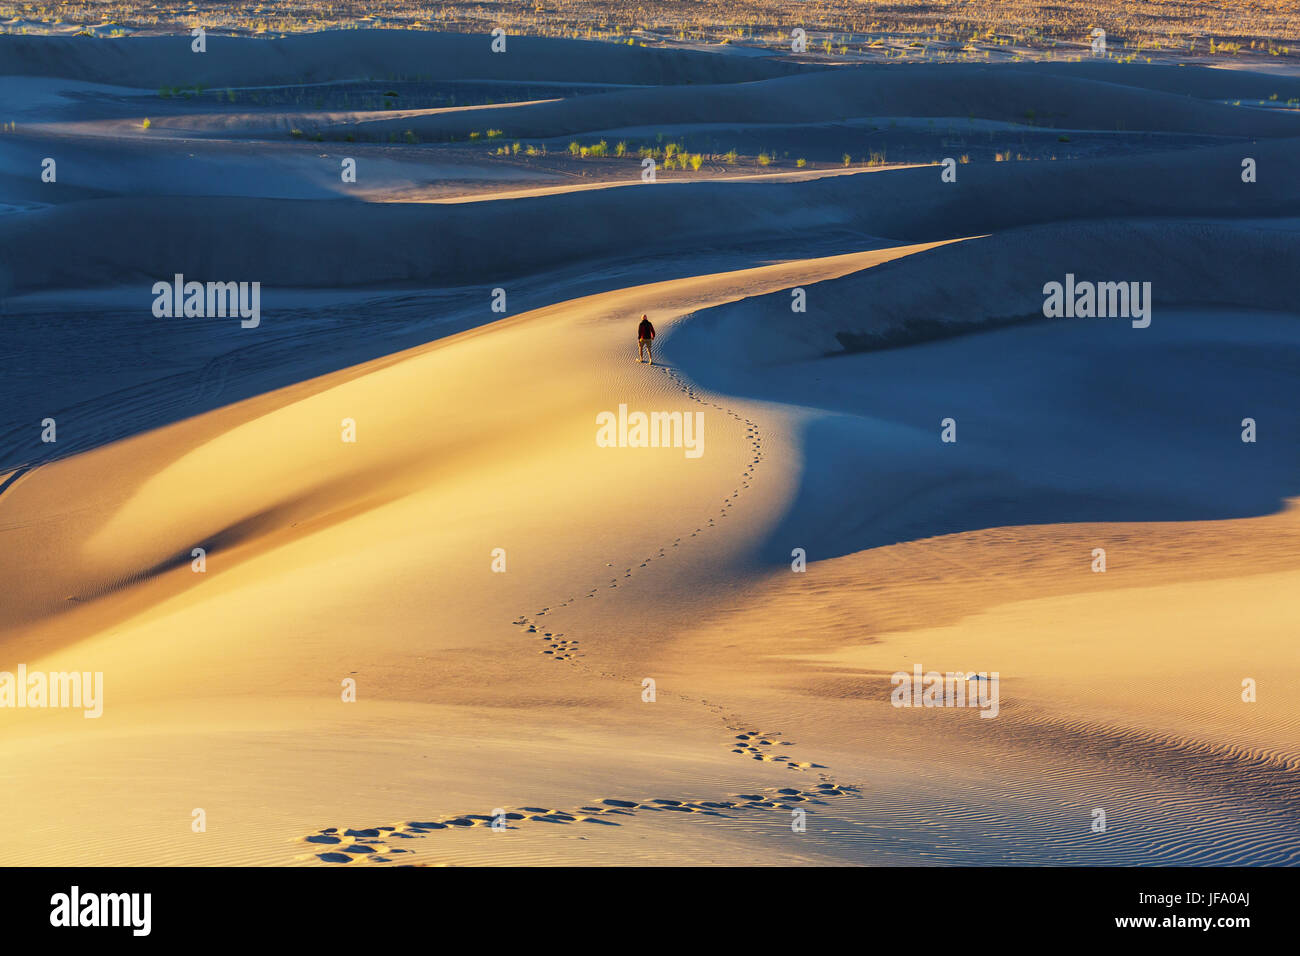 Hike in desert - Stock Image